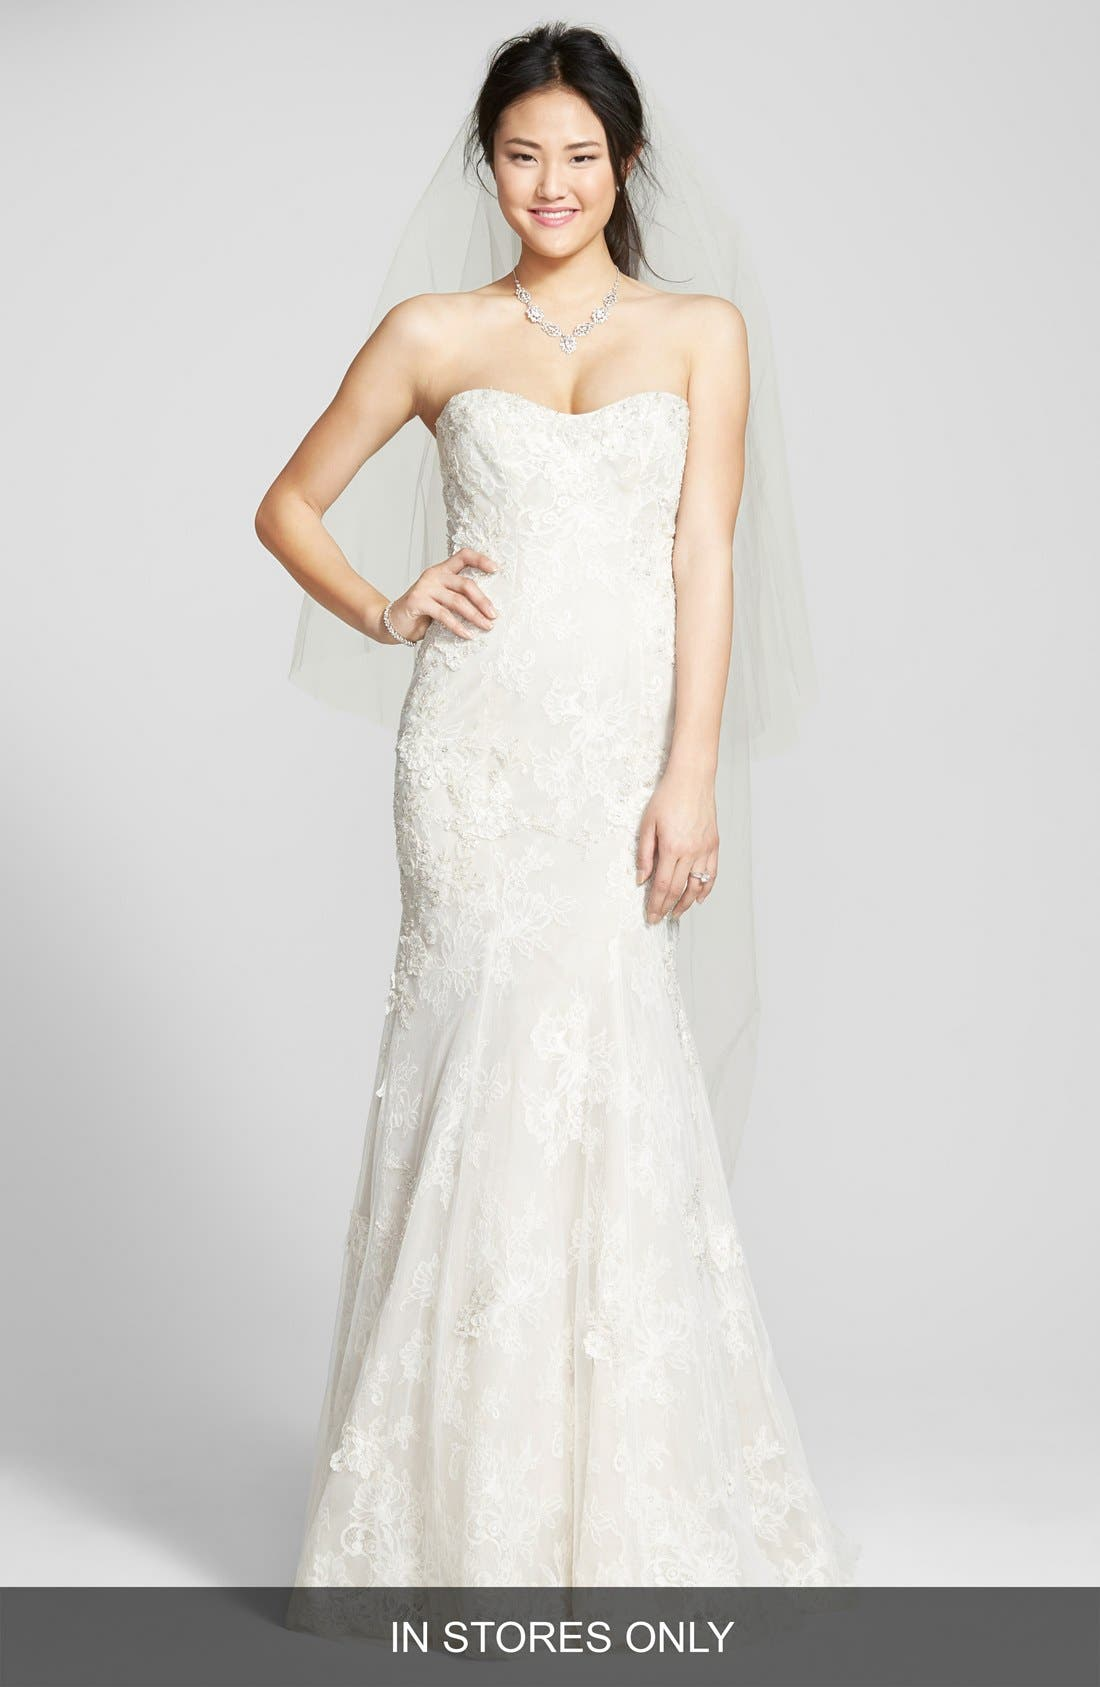 BLISS MONIQUE LHUILLIER Strapless Beaded Lace Trumpet Gown